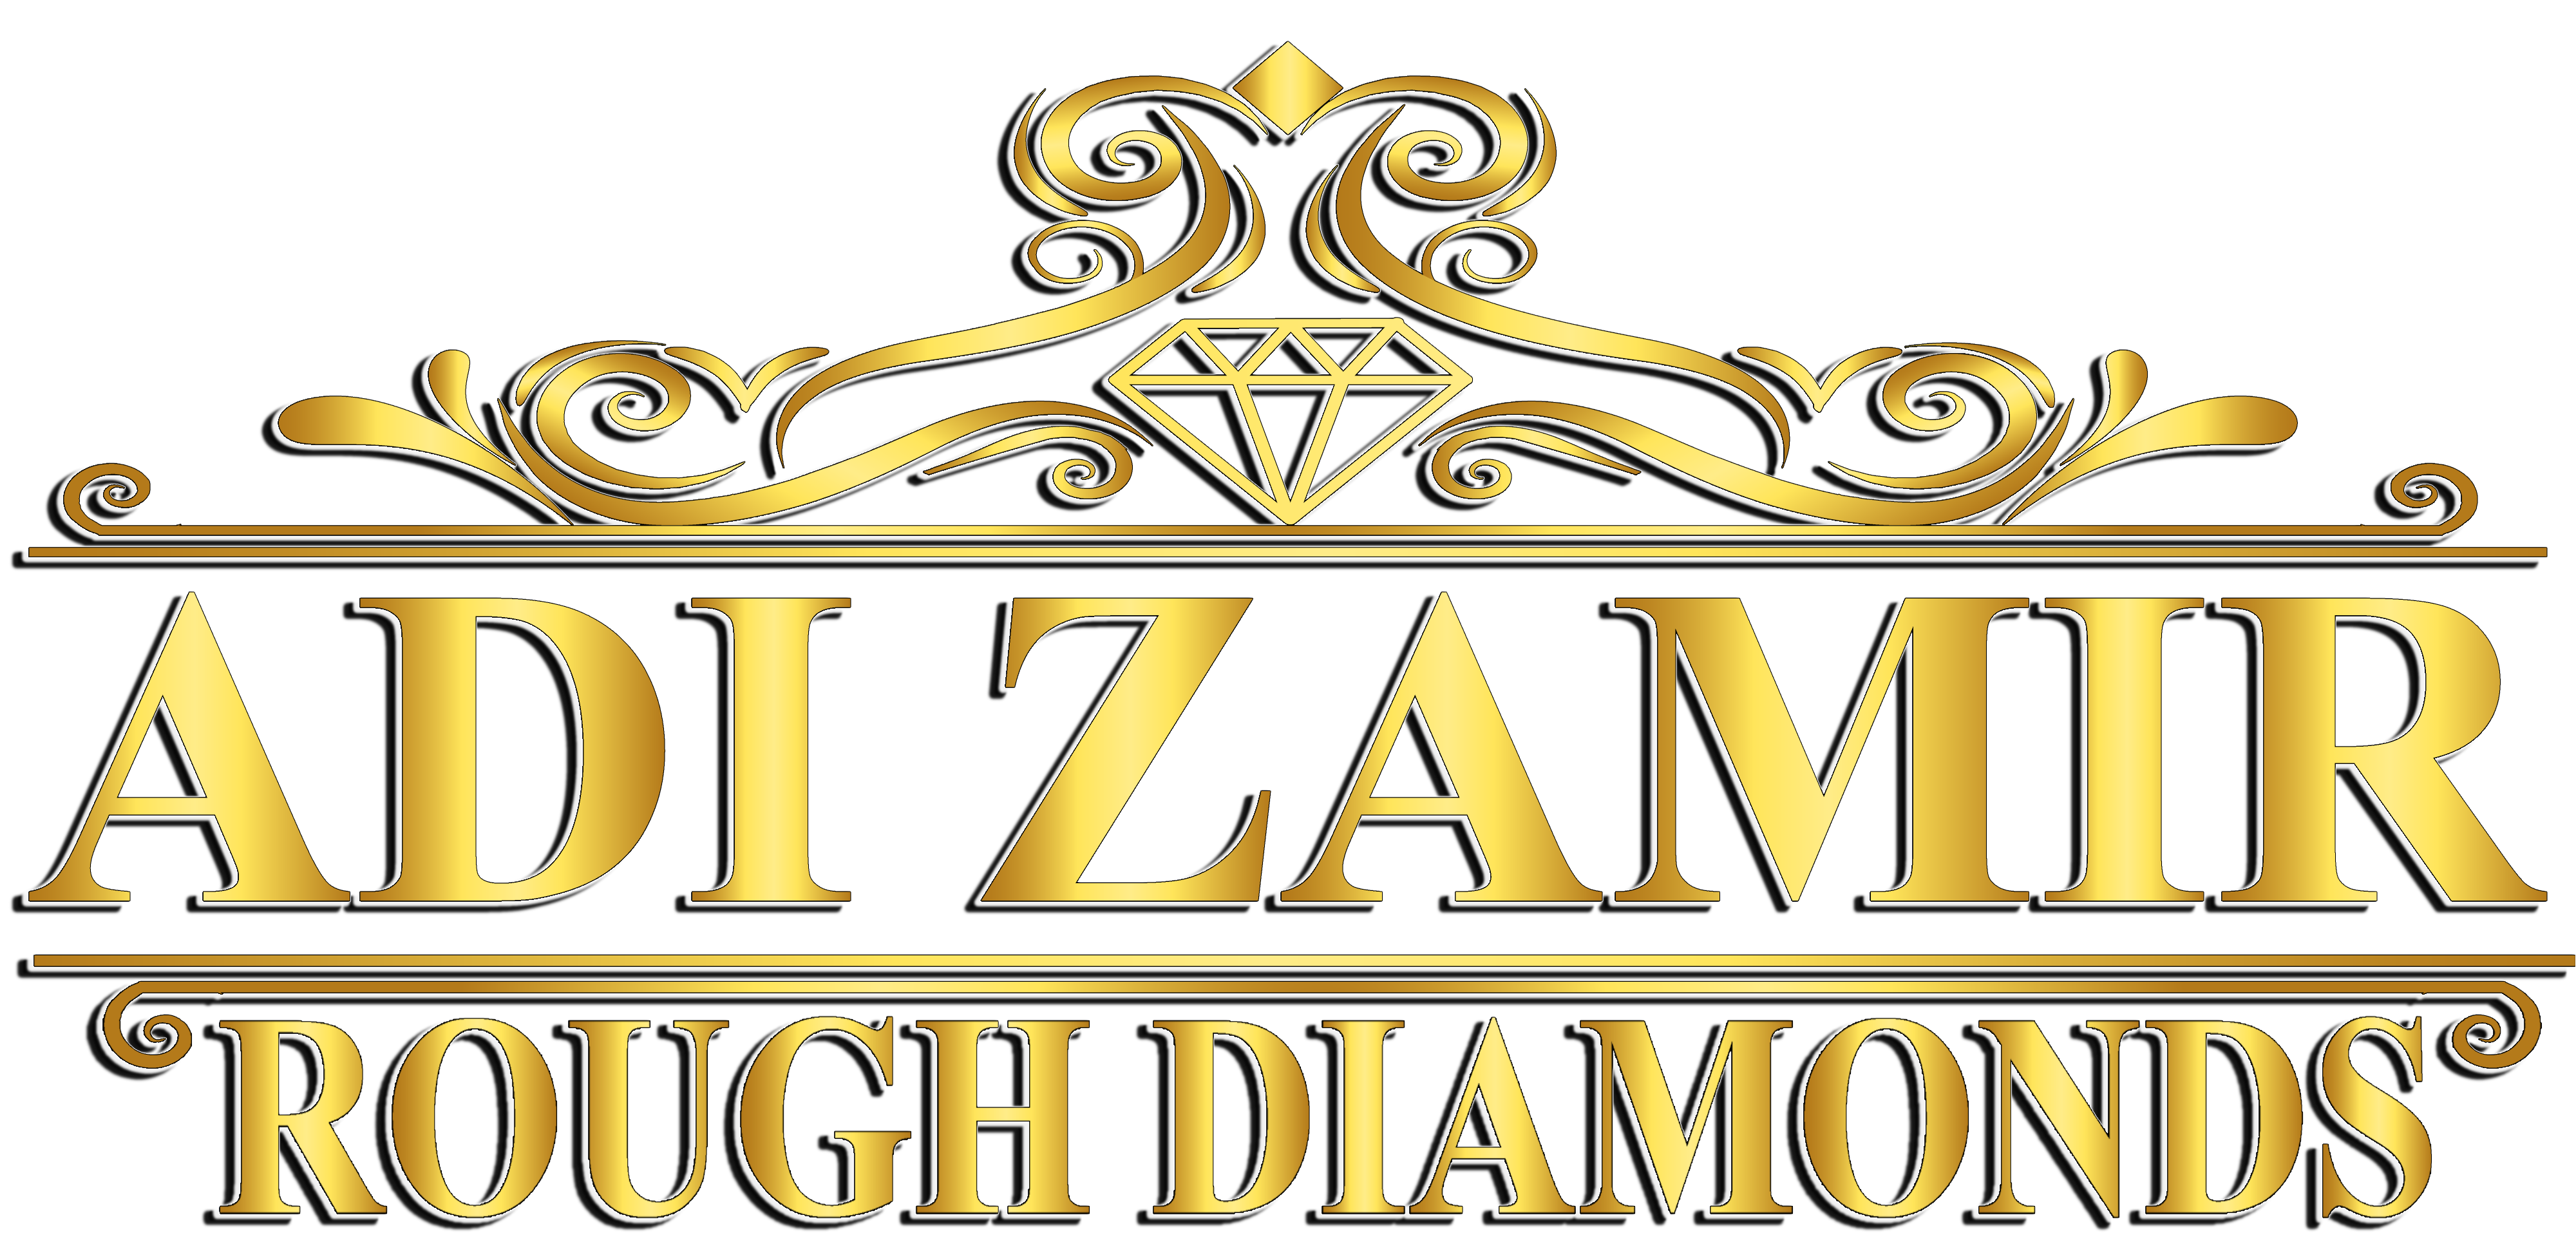 ADI ZAMIR DIAMONDS L.T.D 4-6GR Z Brown / catoca